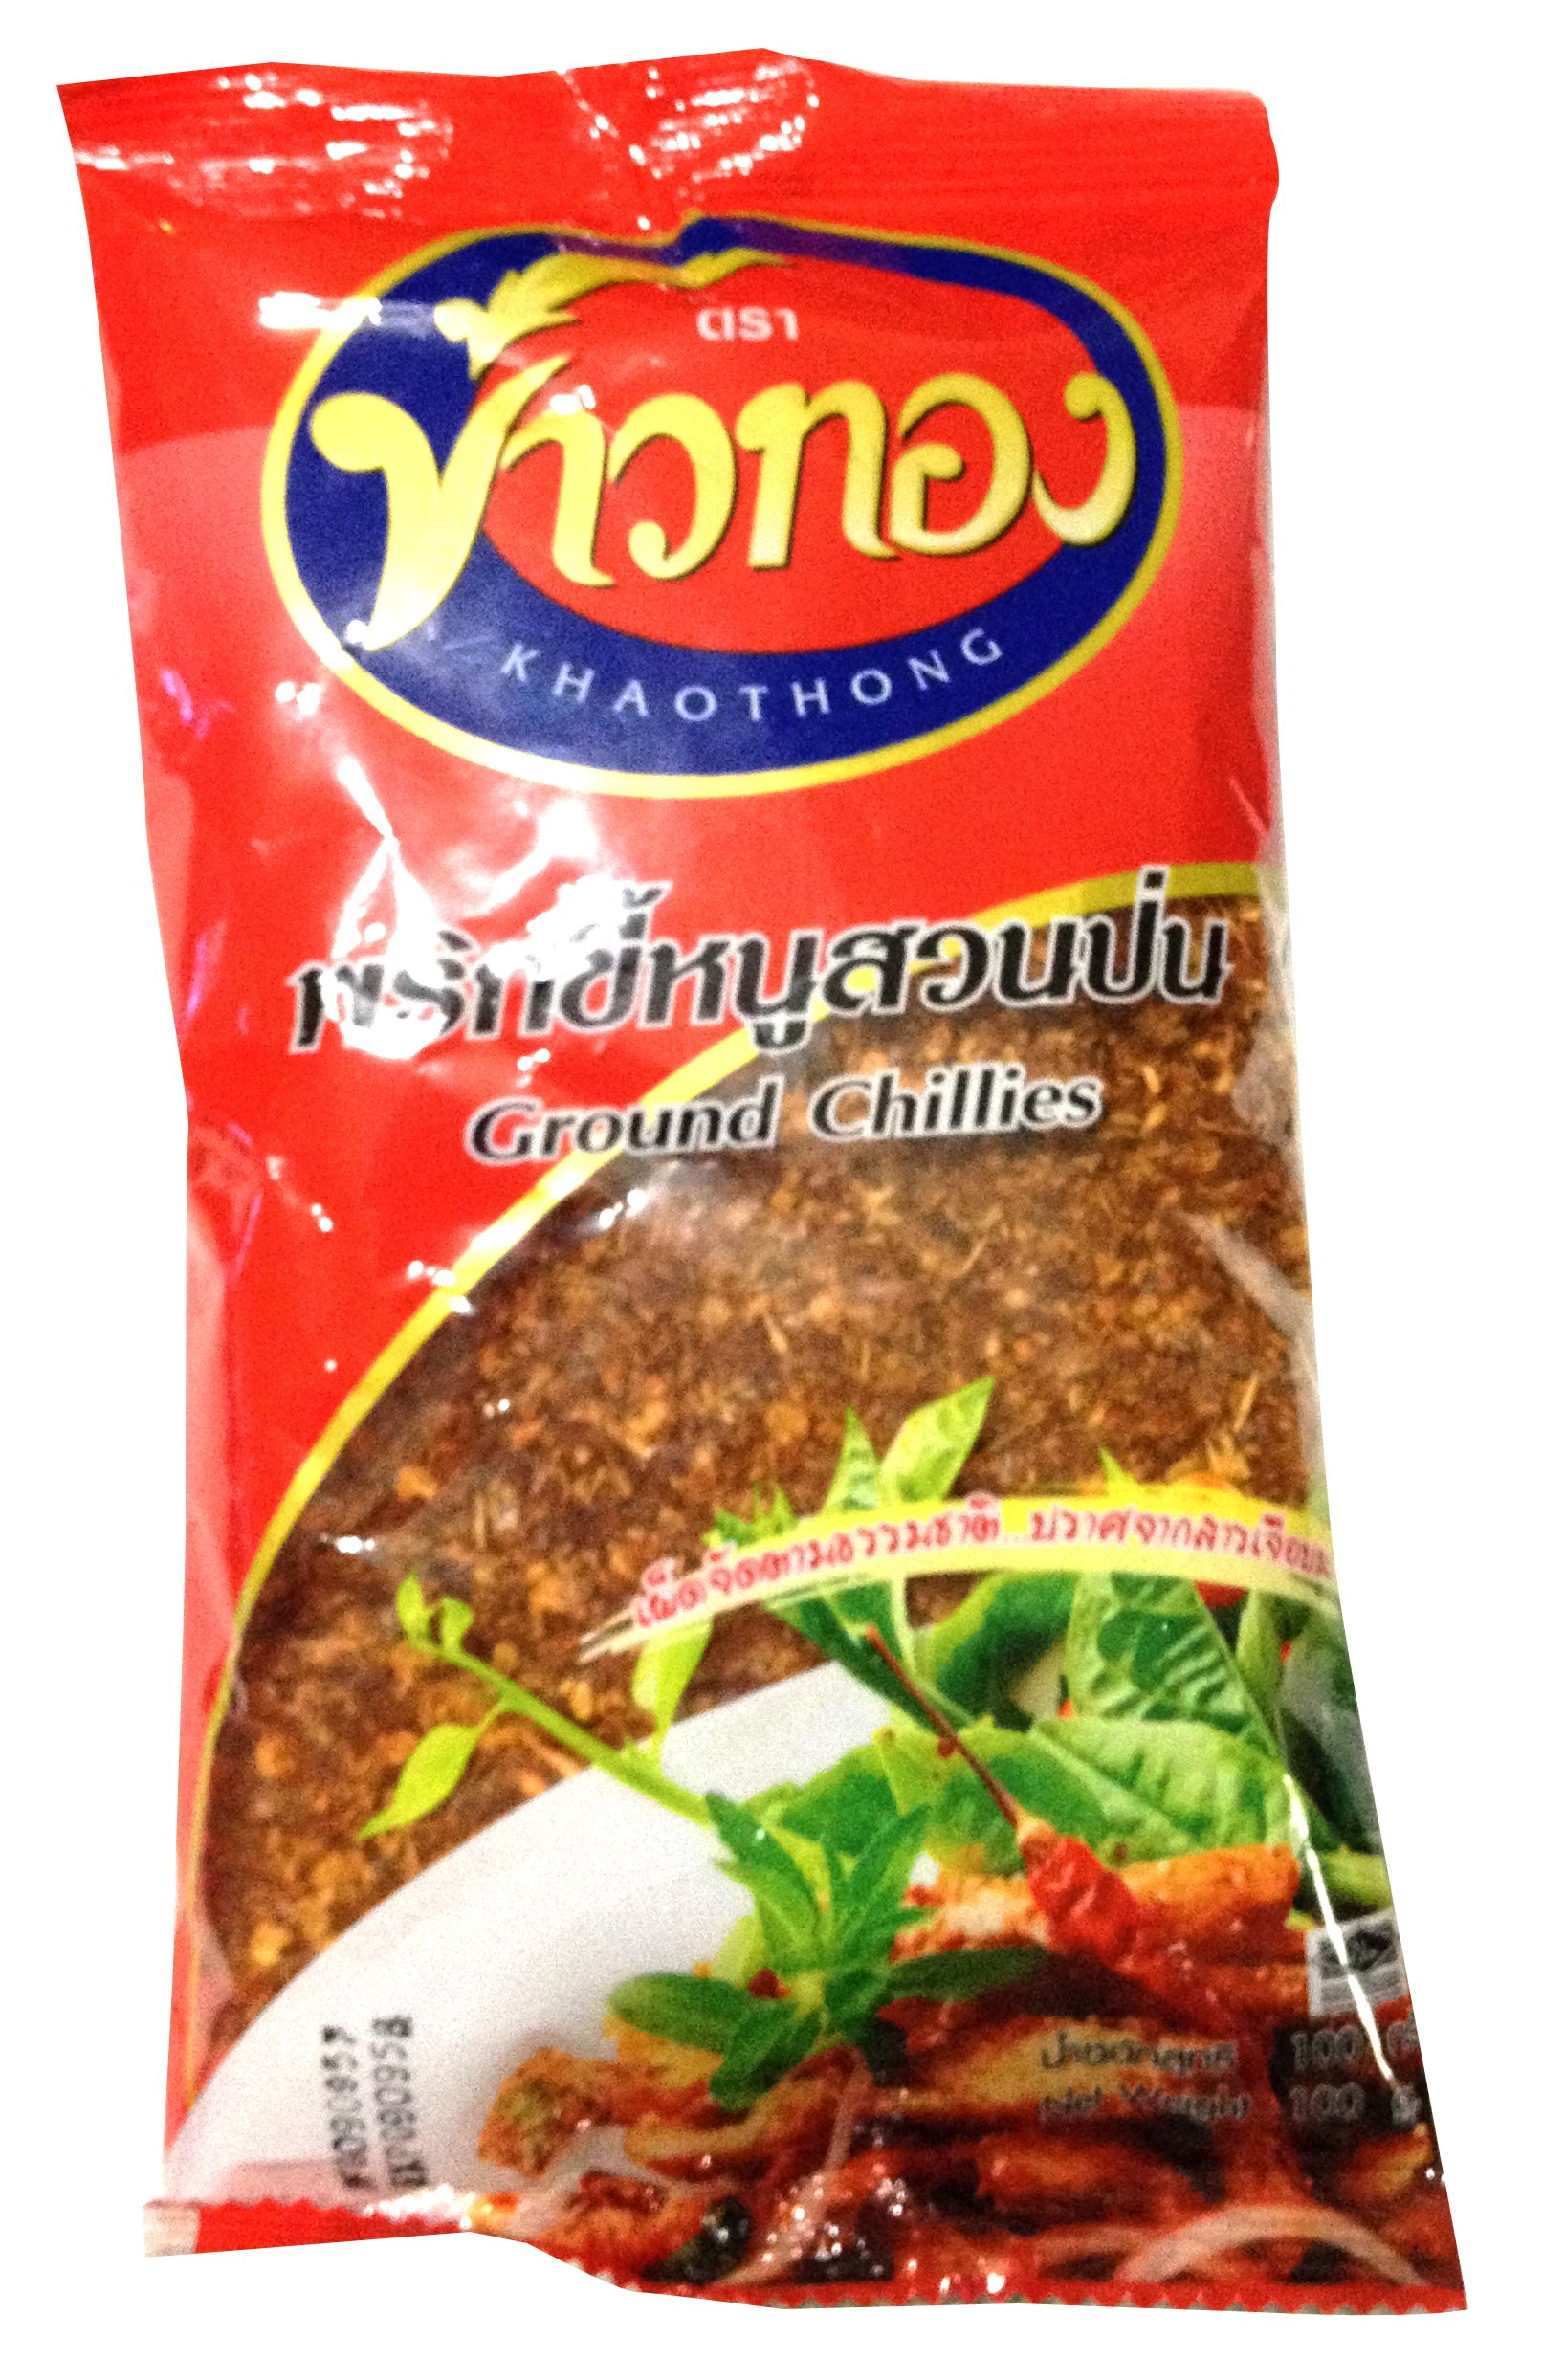 Dried Thai Red Ground Chili Peppers Powder 100g (3.5oz)